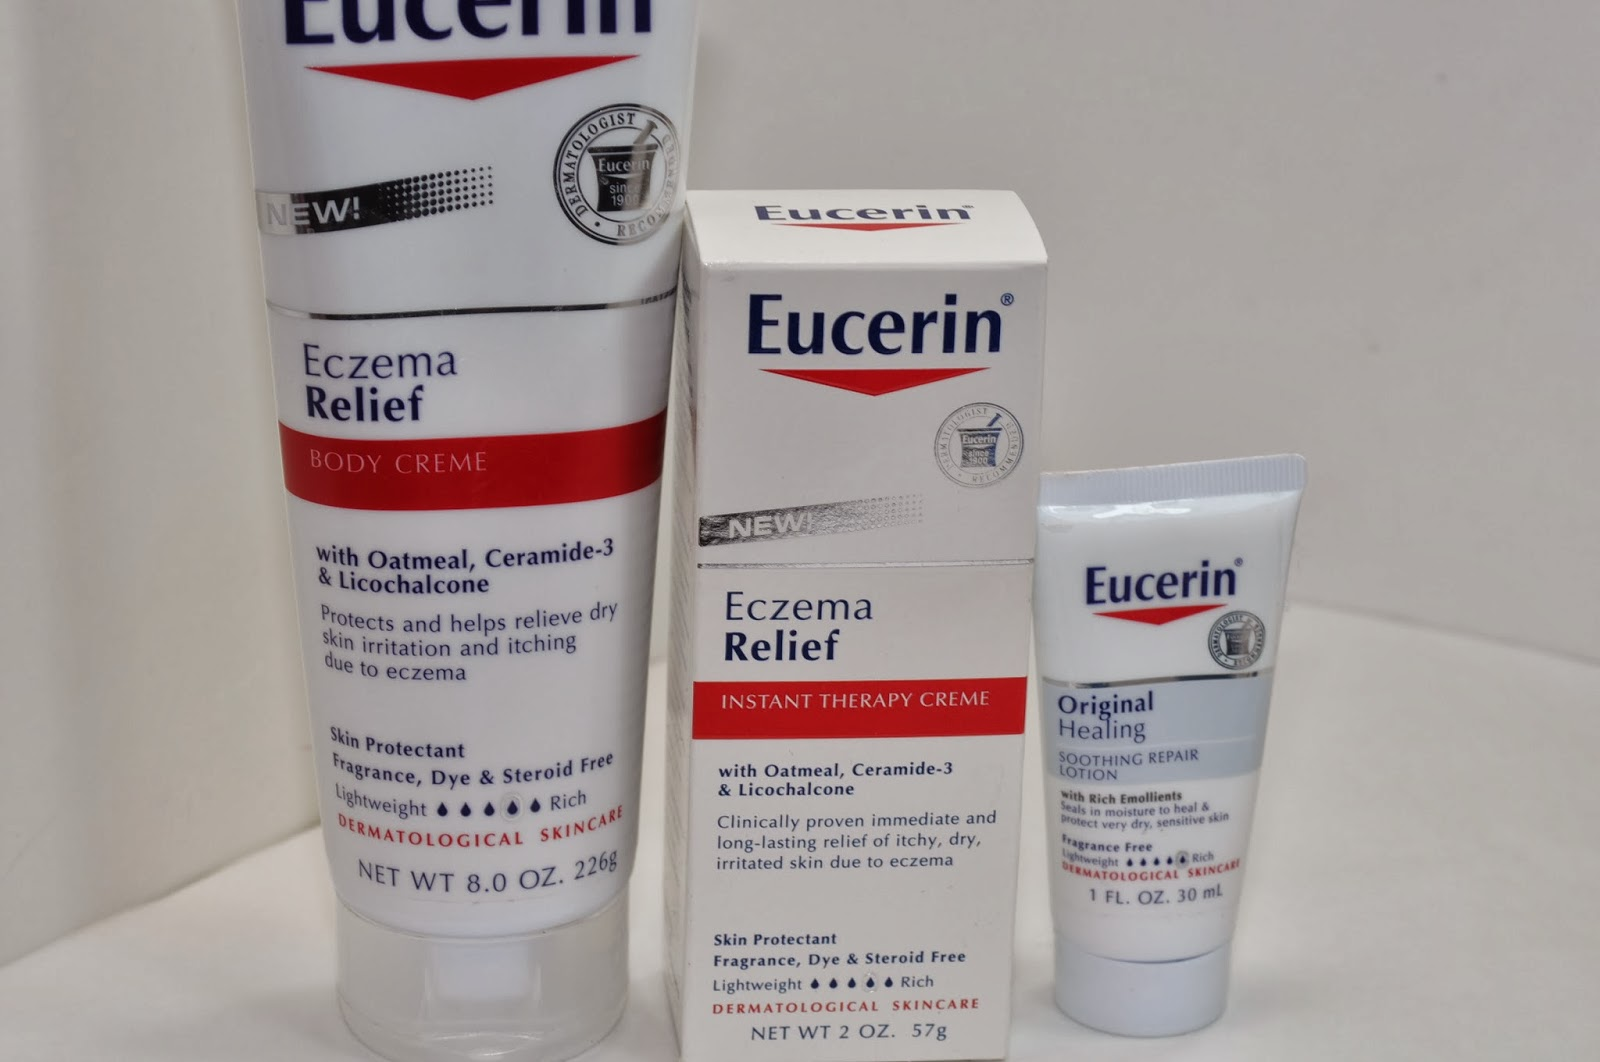 Eucerin Eczema Relief Body Creme And Instant Therapy Creme